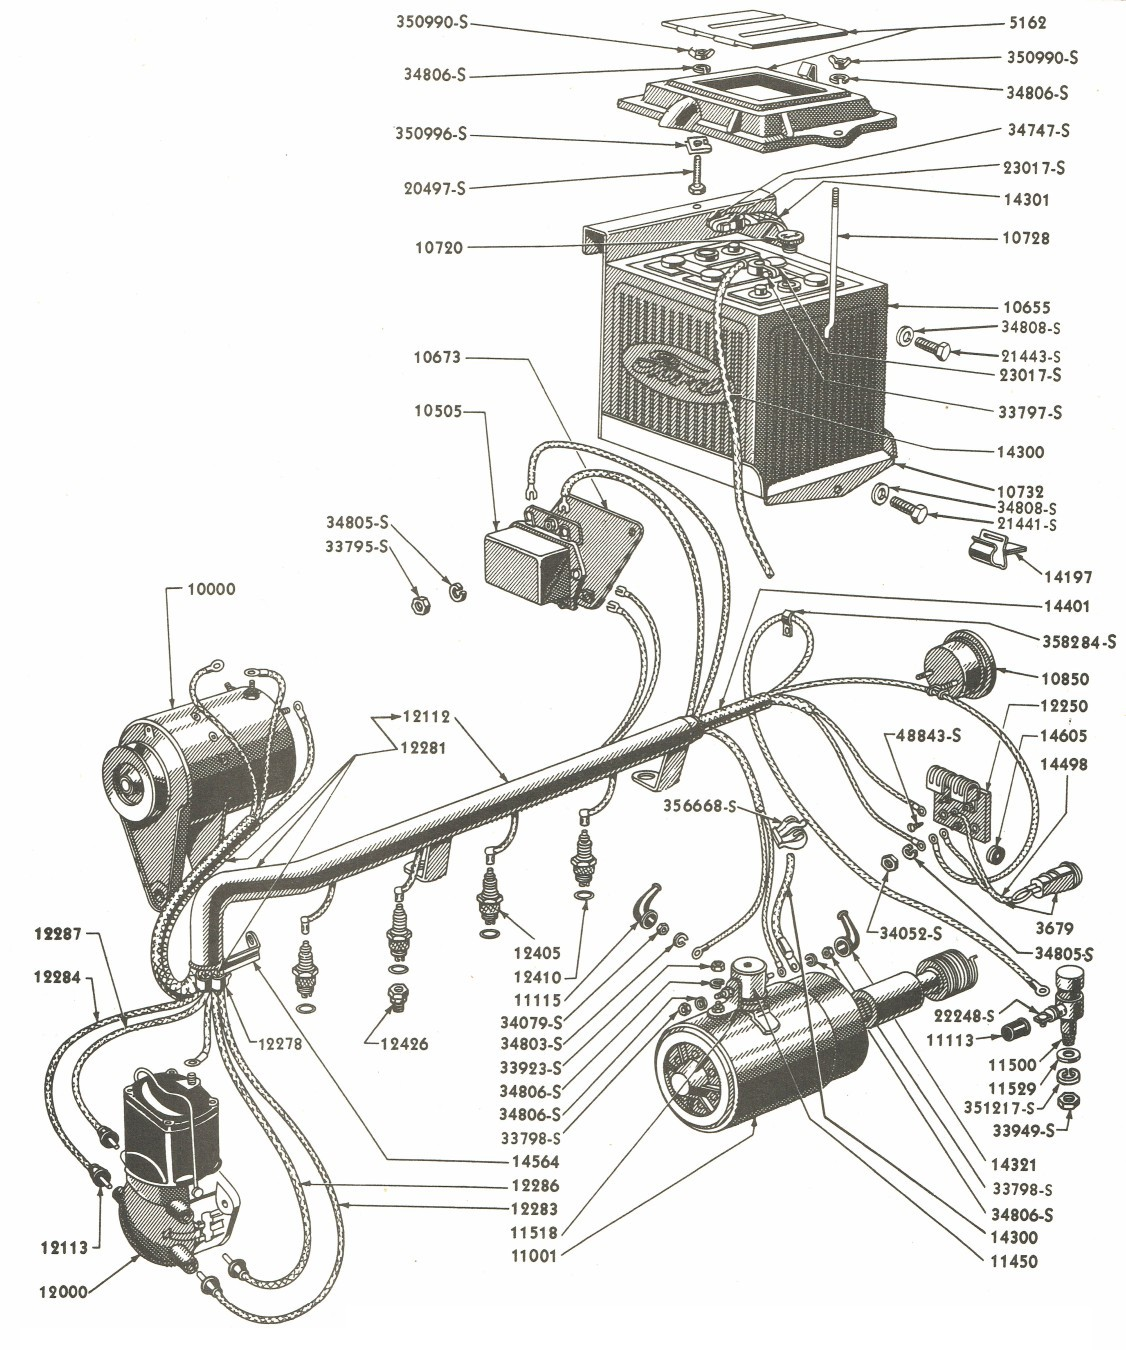 hight resolution of ford 8n 6 volt wiring wiring diagram centre 6 volt wiring harness kits for old cars 6 volt wiring harness source farmall h